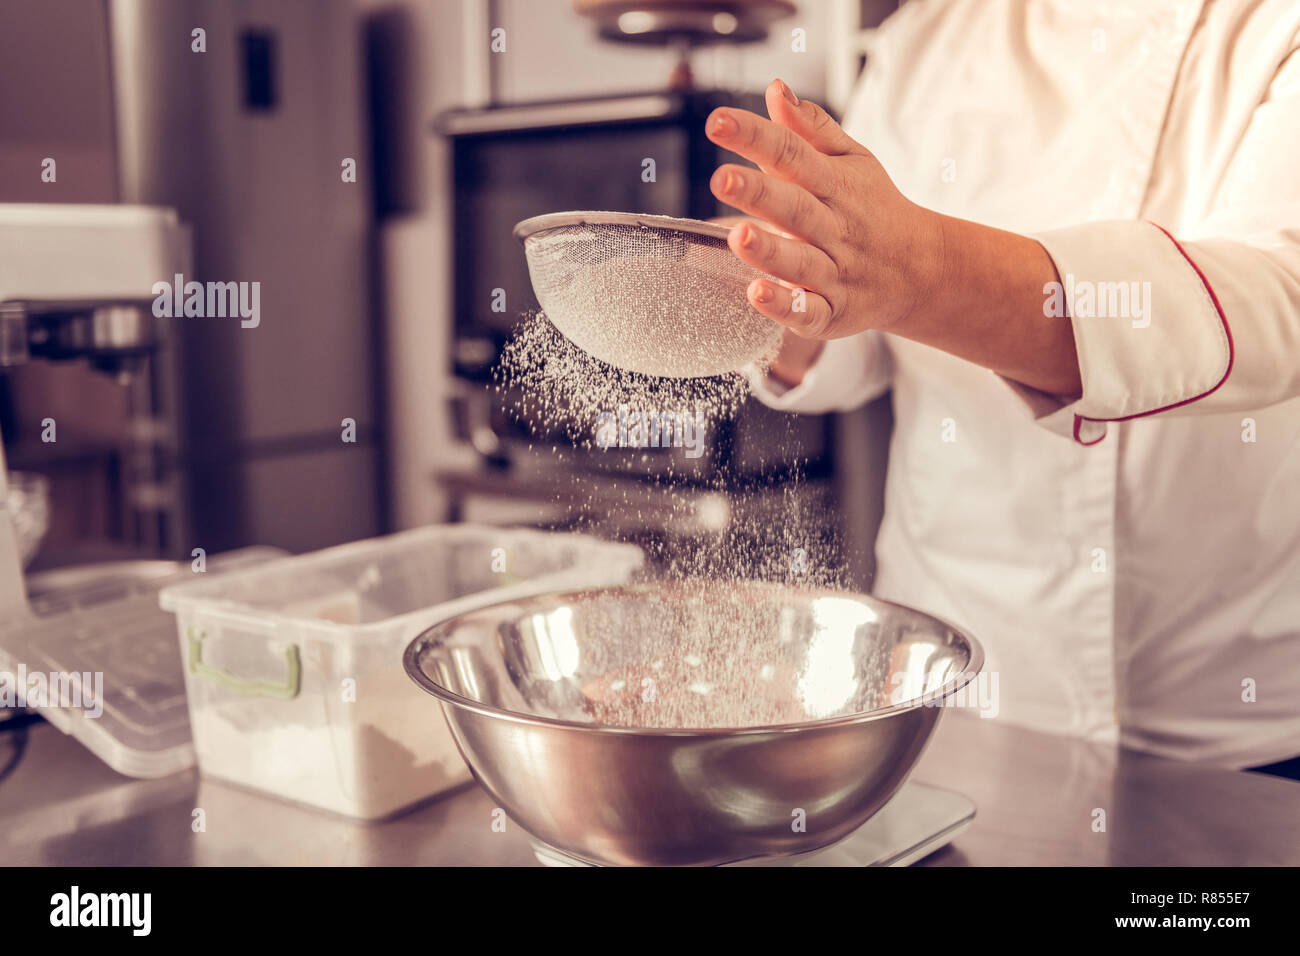 Kitchen equipment. Close up of a flout sifter being in female hands during the process of food preparation - Stock Image